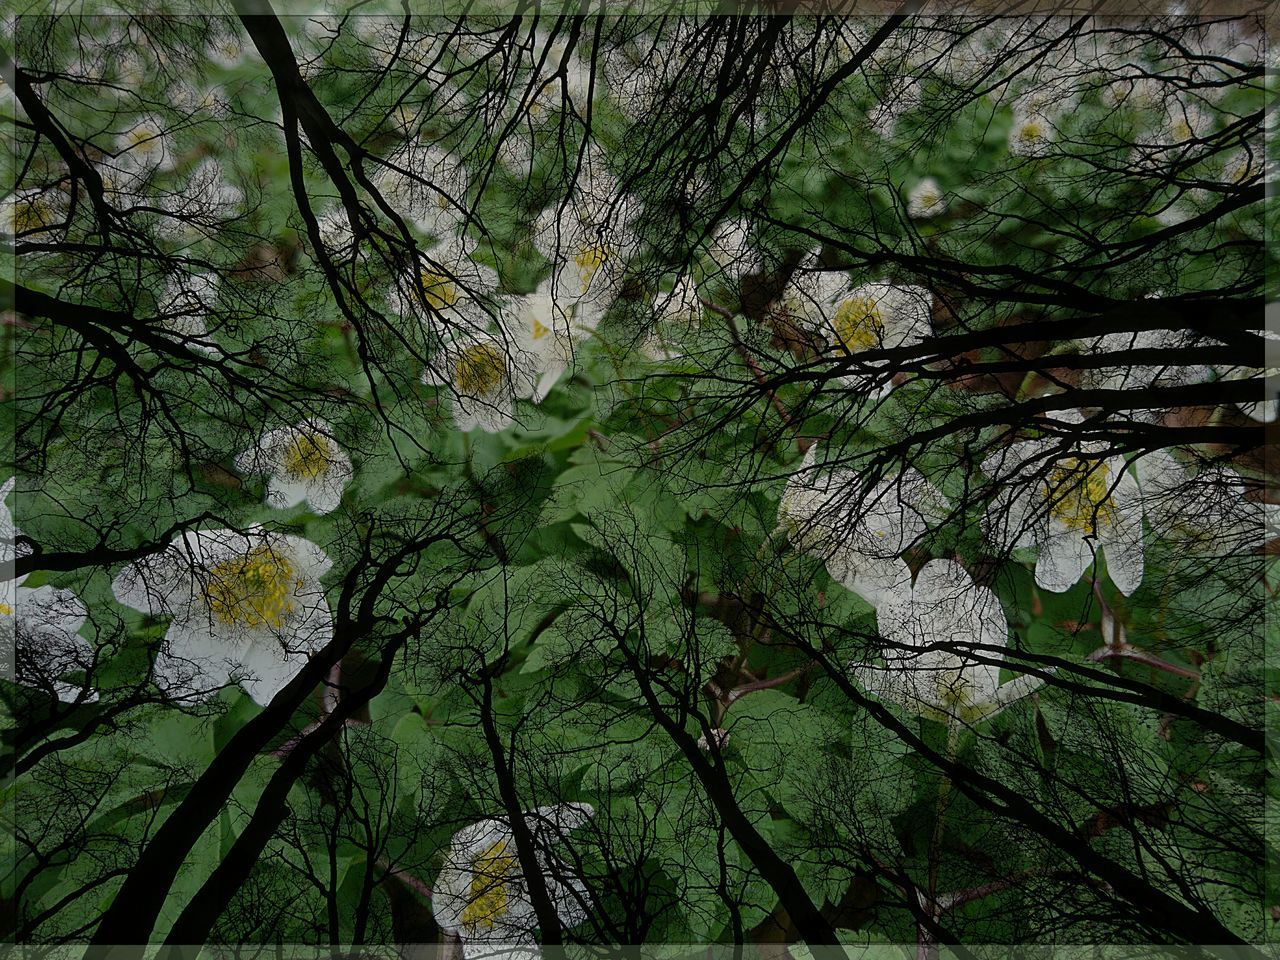 Blick nach oben und nach unten...Spring Time Forest Buschwindröschen Abstract Nature Abstract Photography Anemone Nemorosa Sonyphotography Sony Xperia Photography Streamzoofamily EyeEm Nature Lover EyeEm Deutschland Cut And Paste